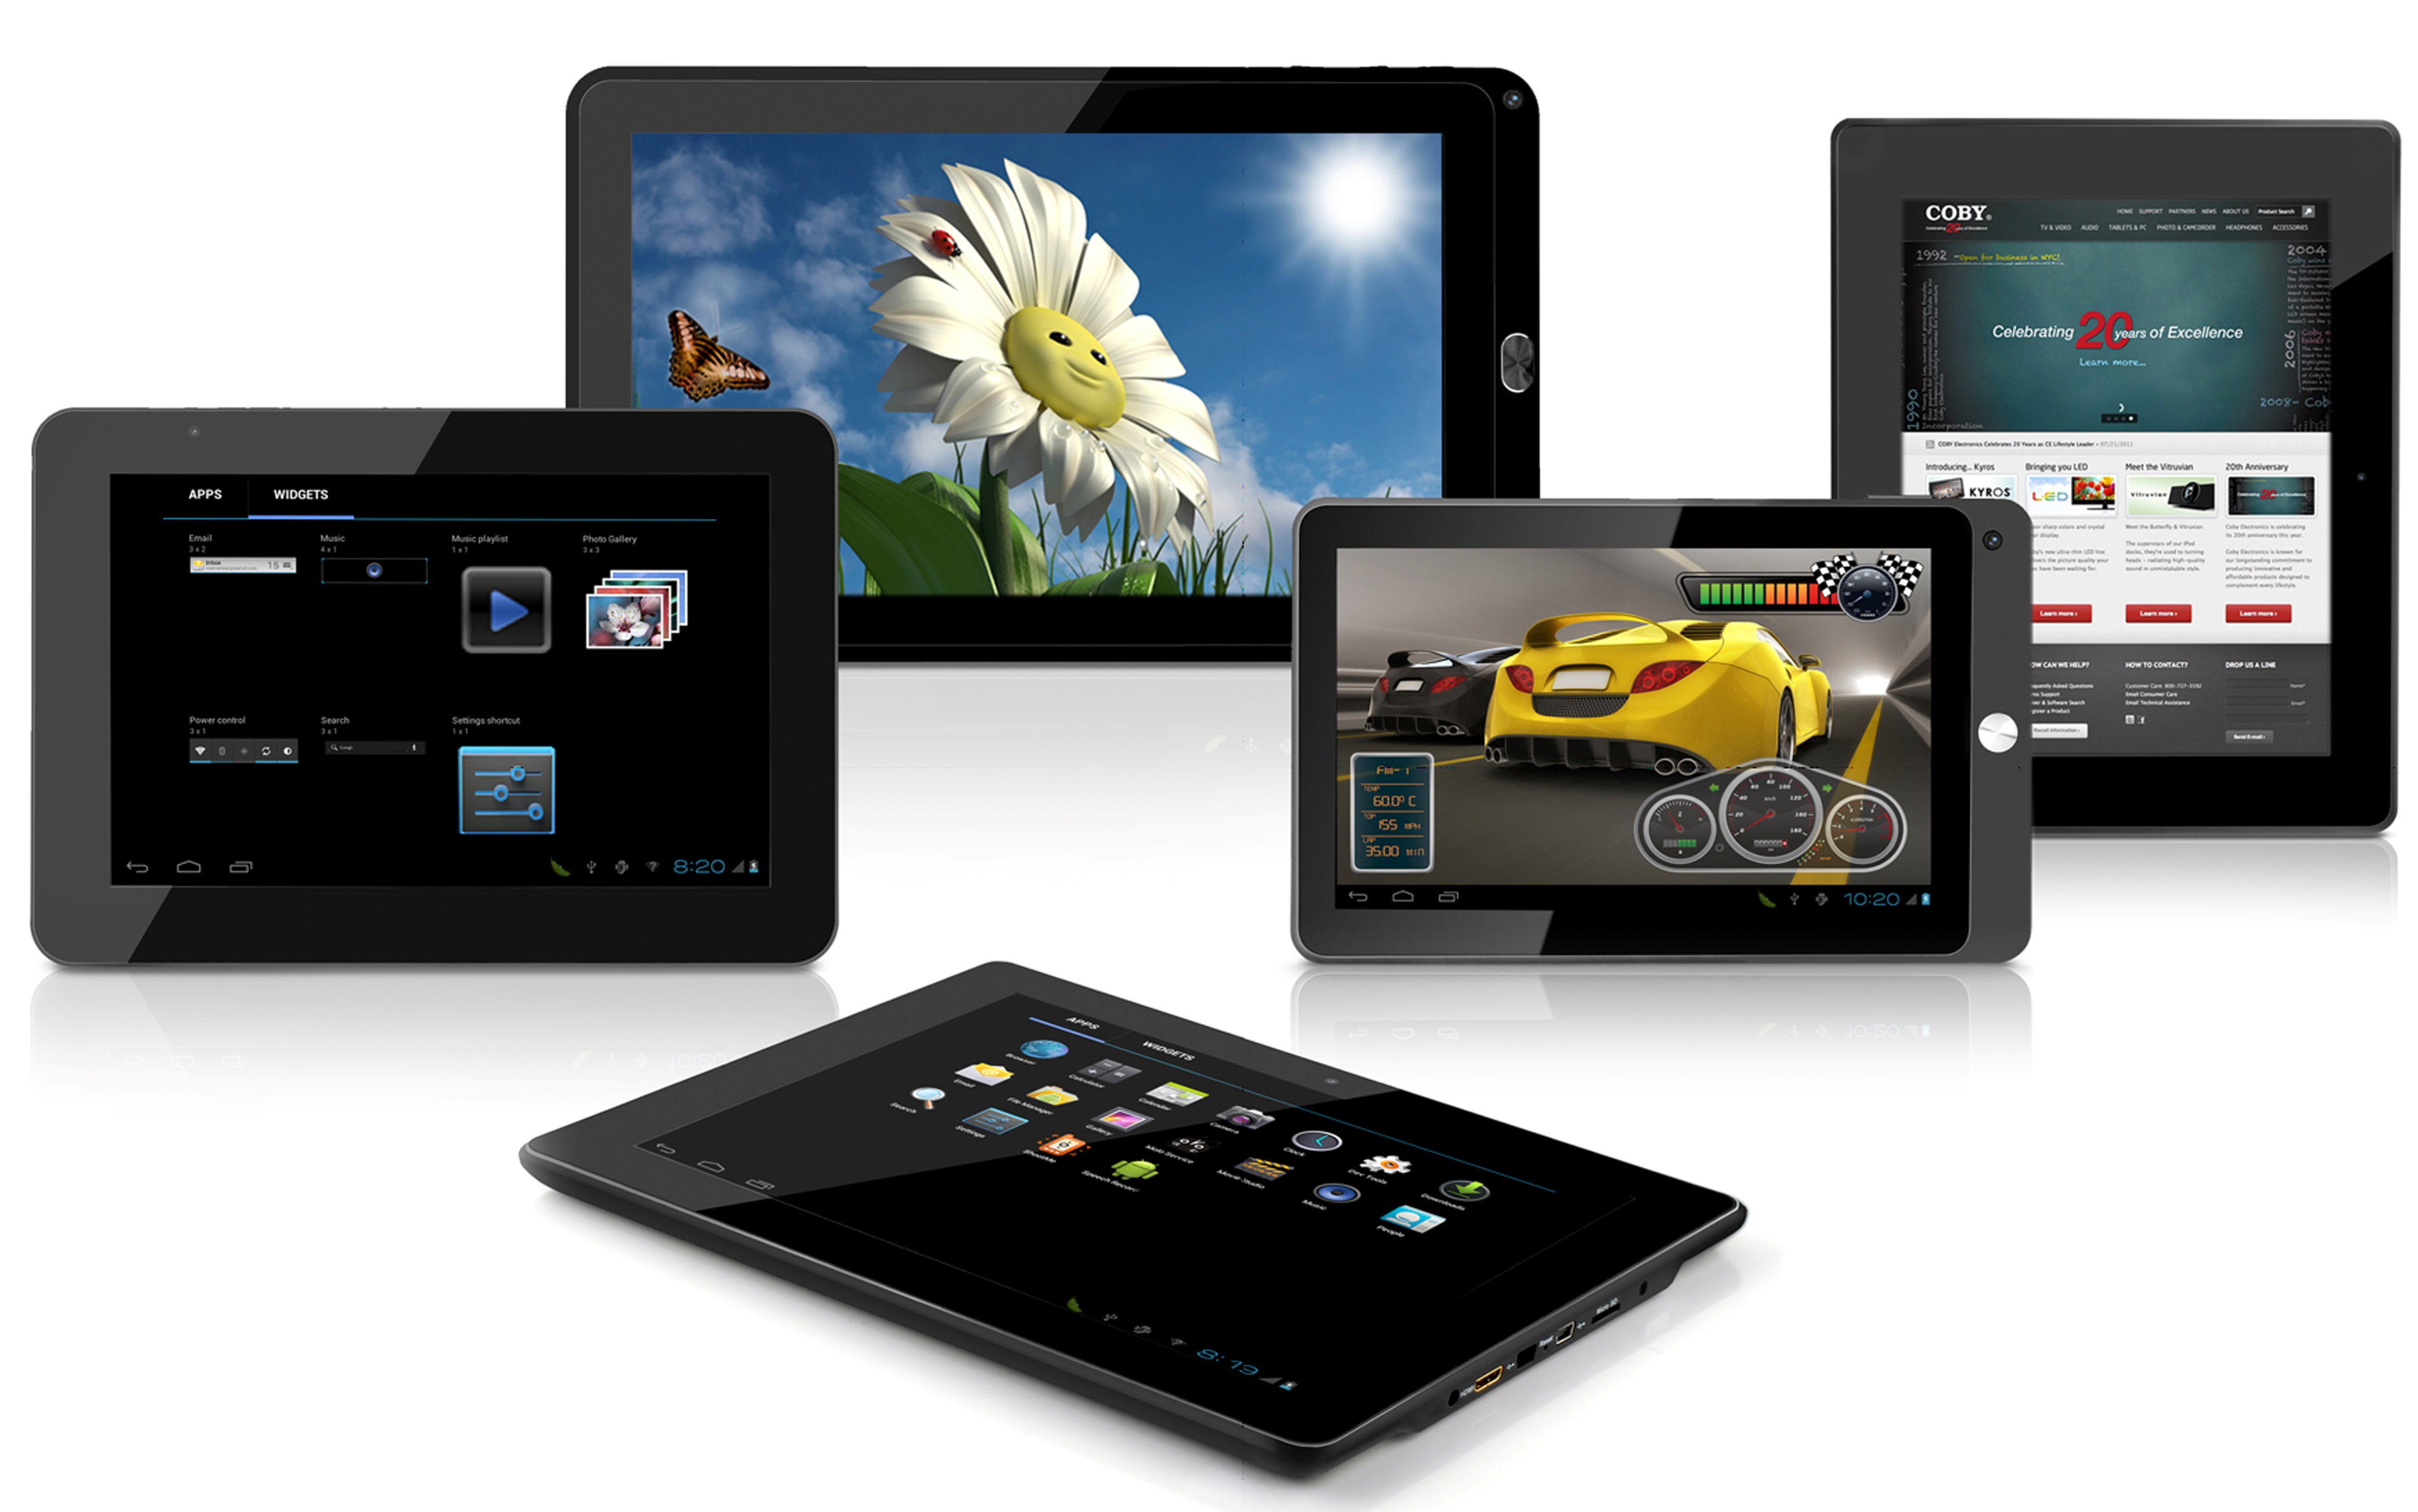 Best cheap Android tablets buying guide